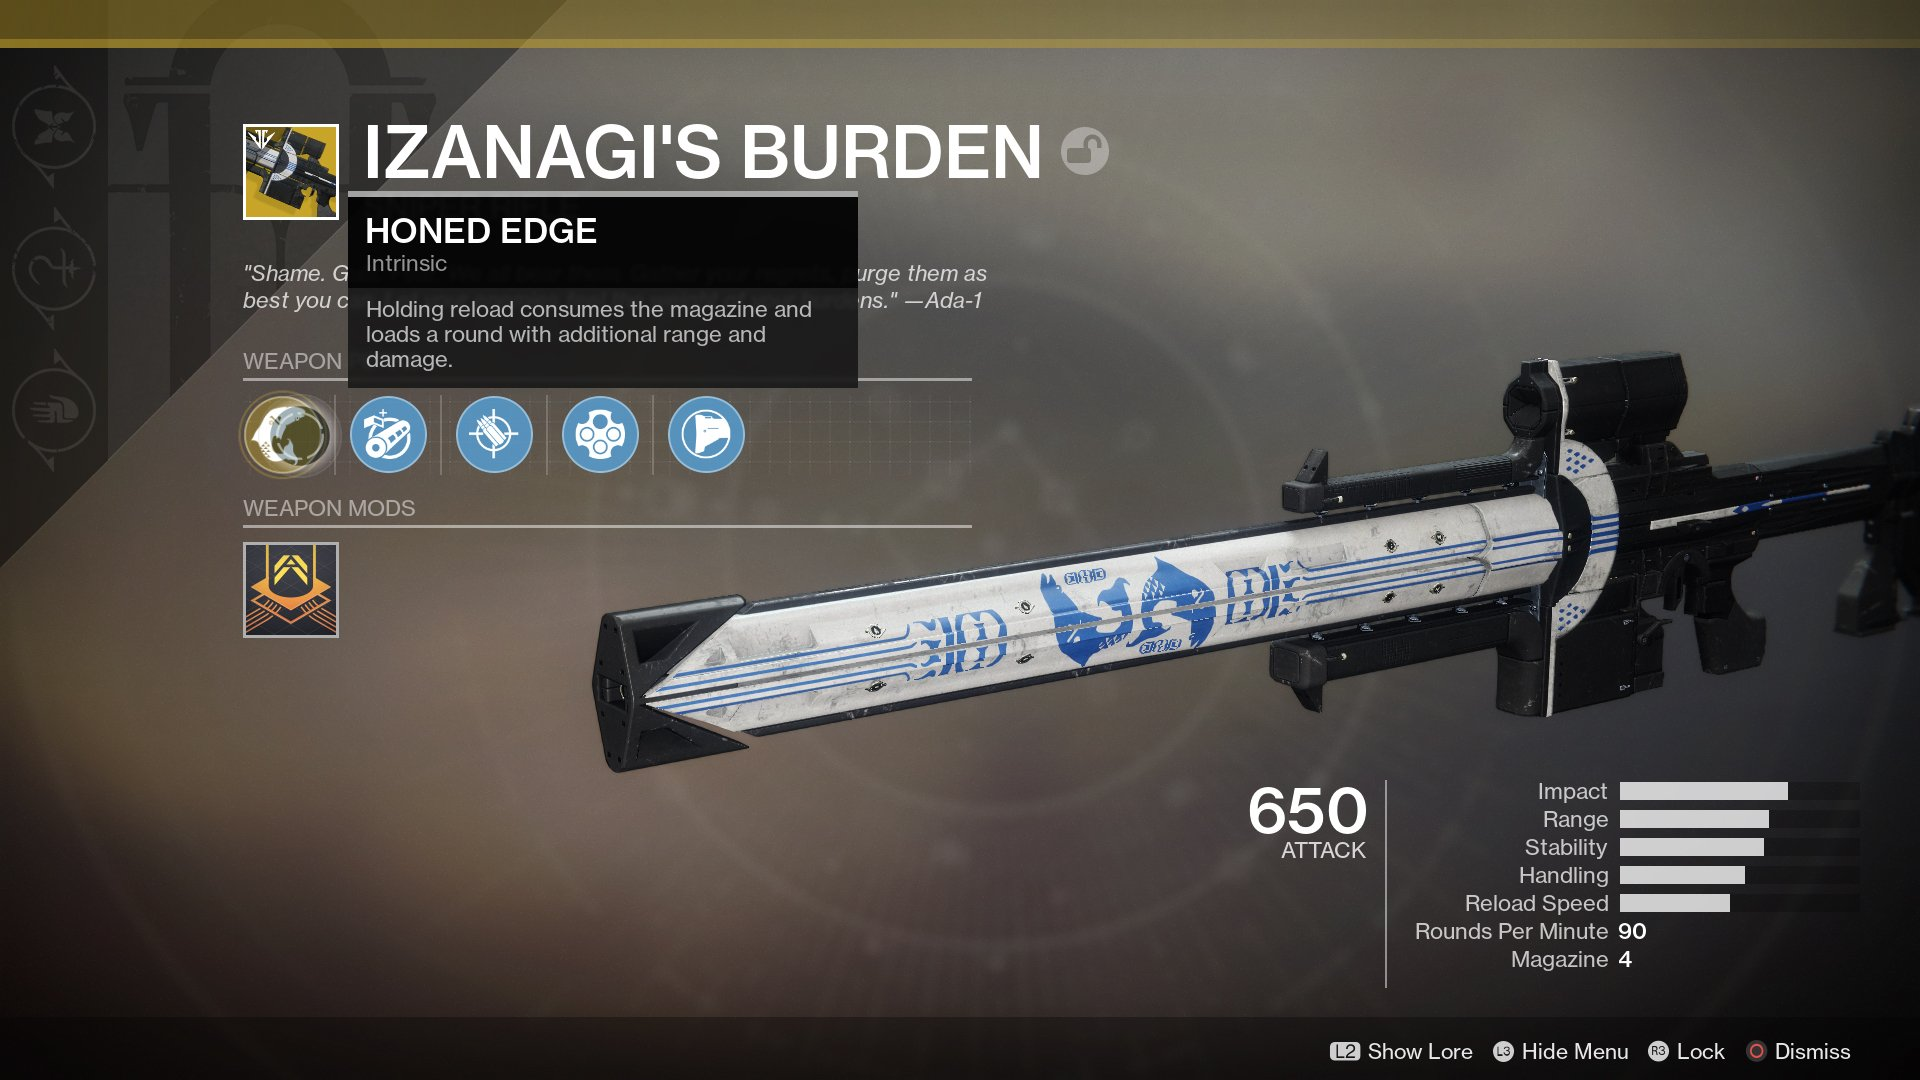 By unlocking all four locks on the Mysterious Box, you'll be able to obtain the Izanagi's Burden Exotic sniper rifle in Destiny 2.